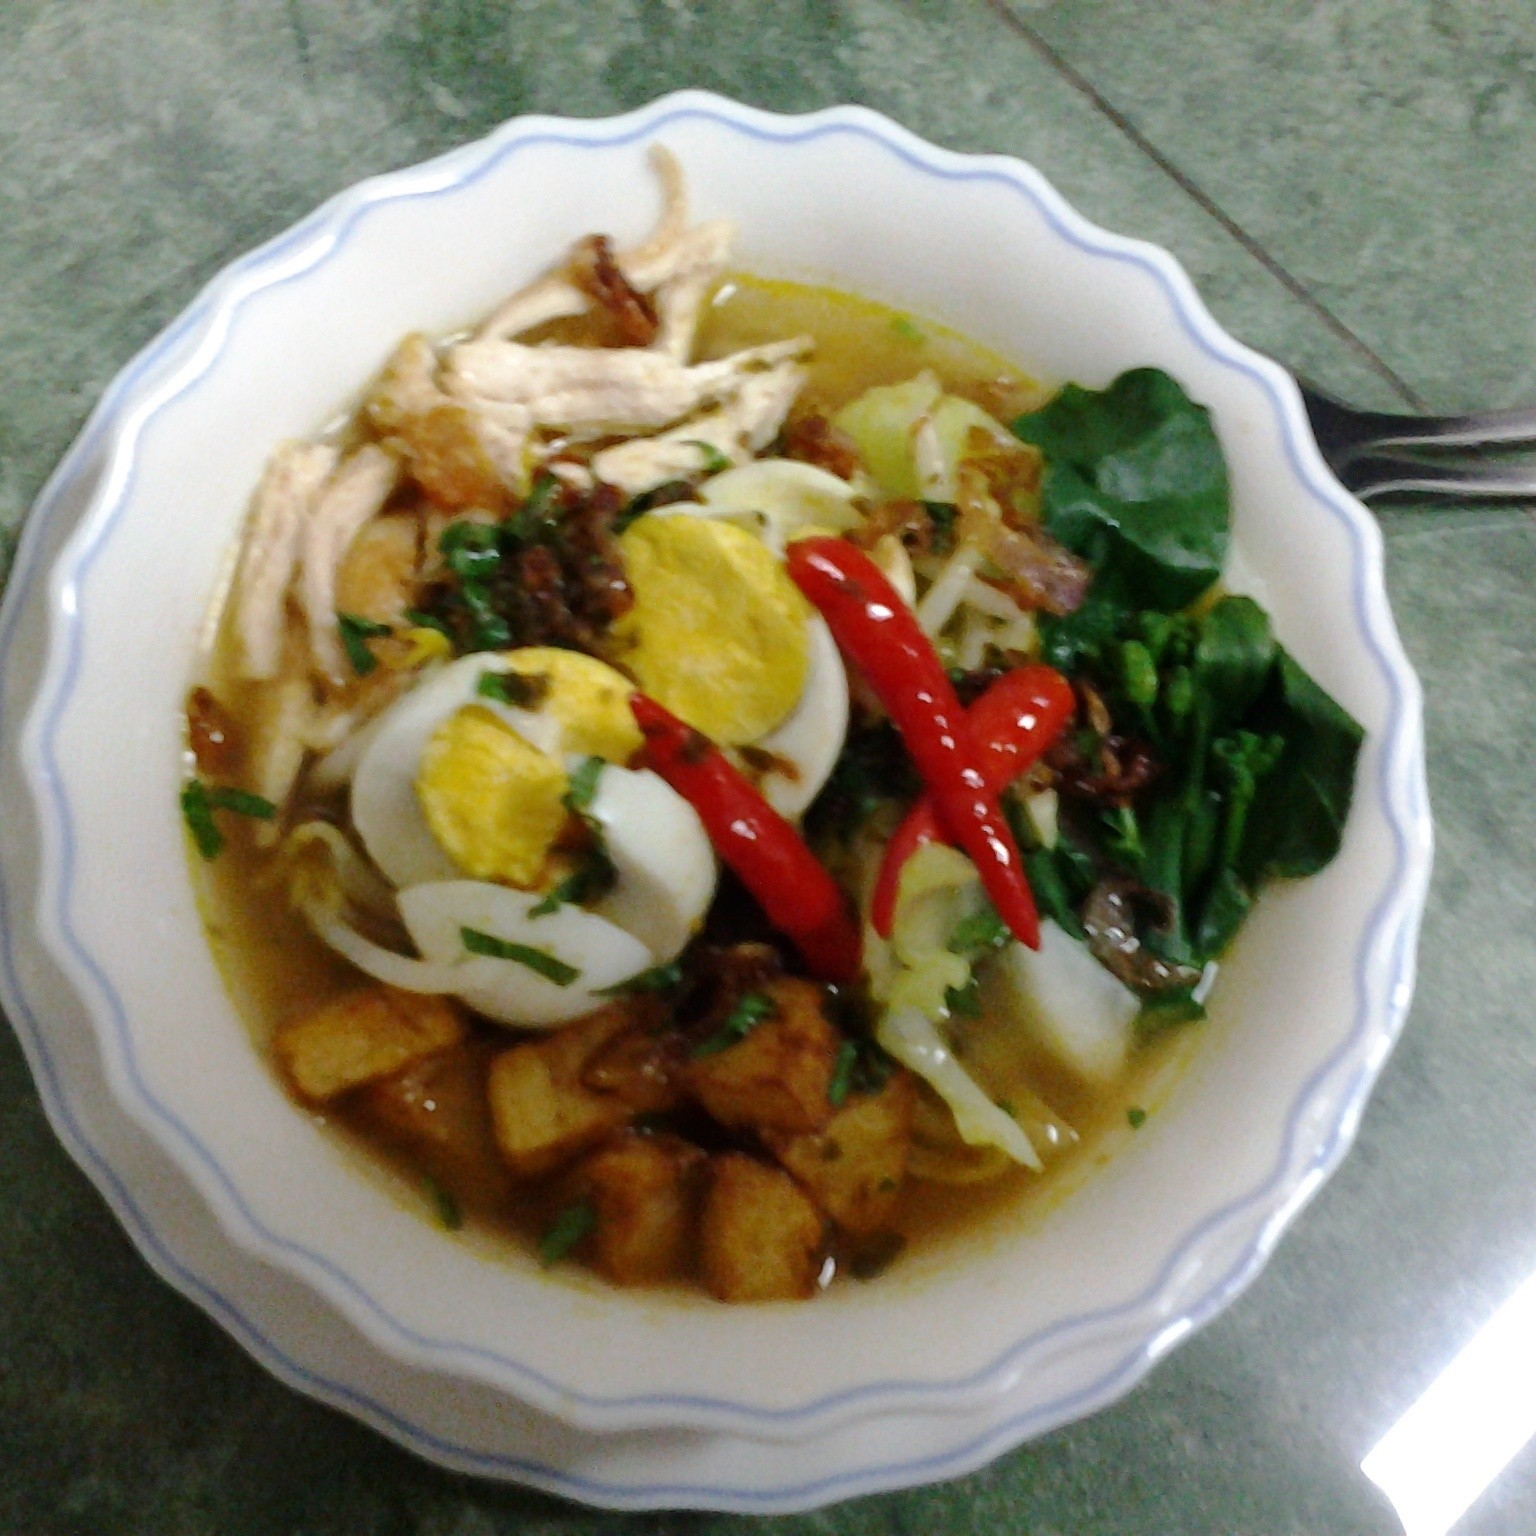 Indonesian food known as soto,yellow soup glass noodles with shredded chicken, boil egg, fried potato and veggies.